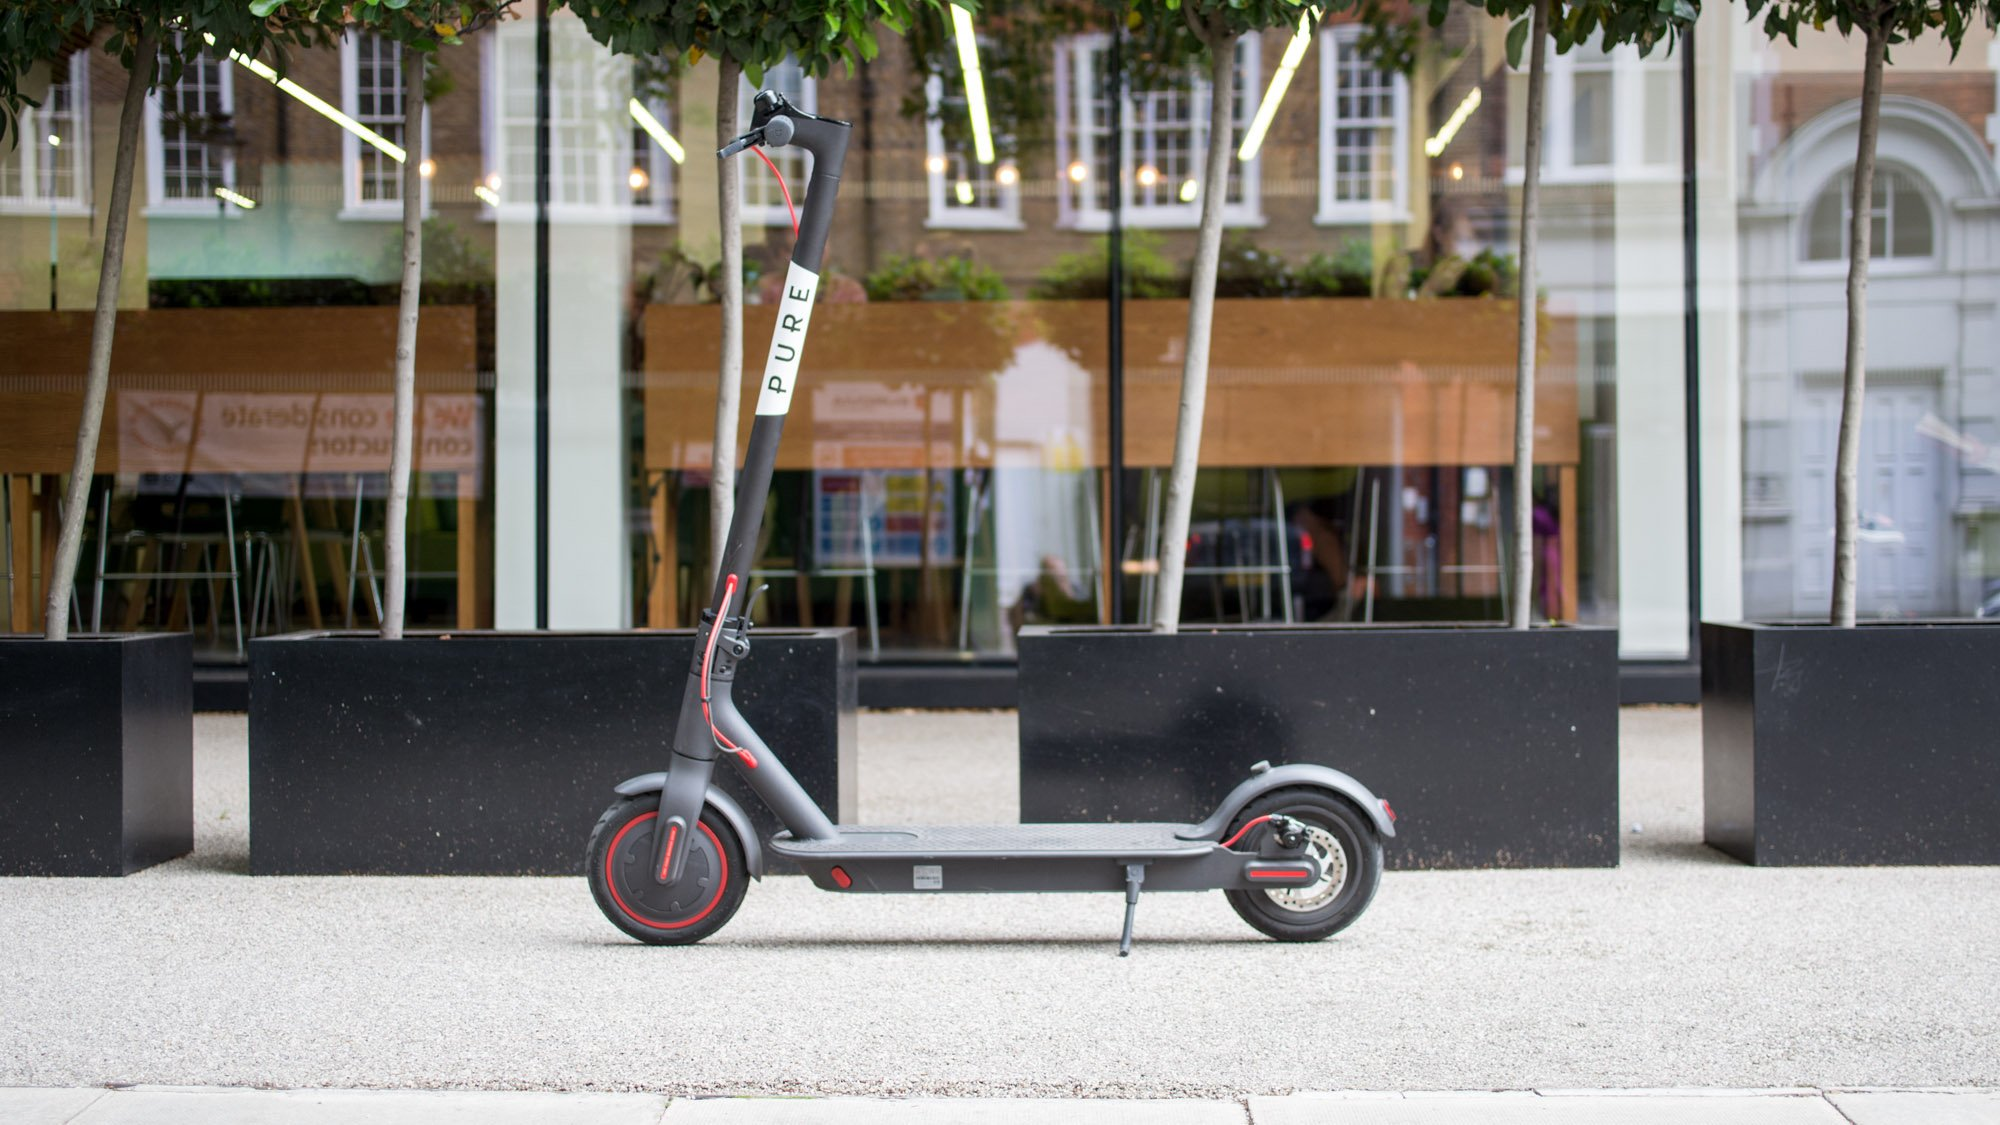 Xiaomi M365 Pro electric scooter review: A worthy upgrade? | Expert